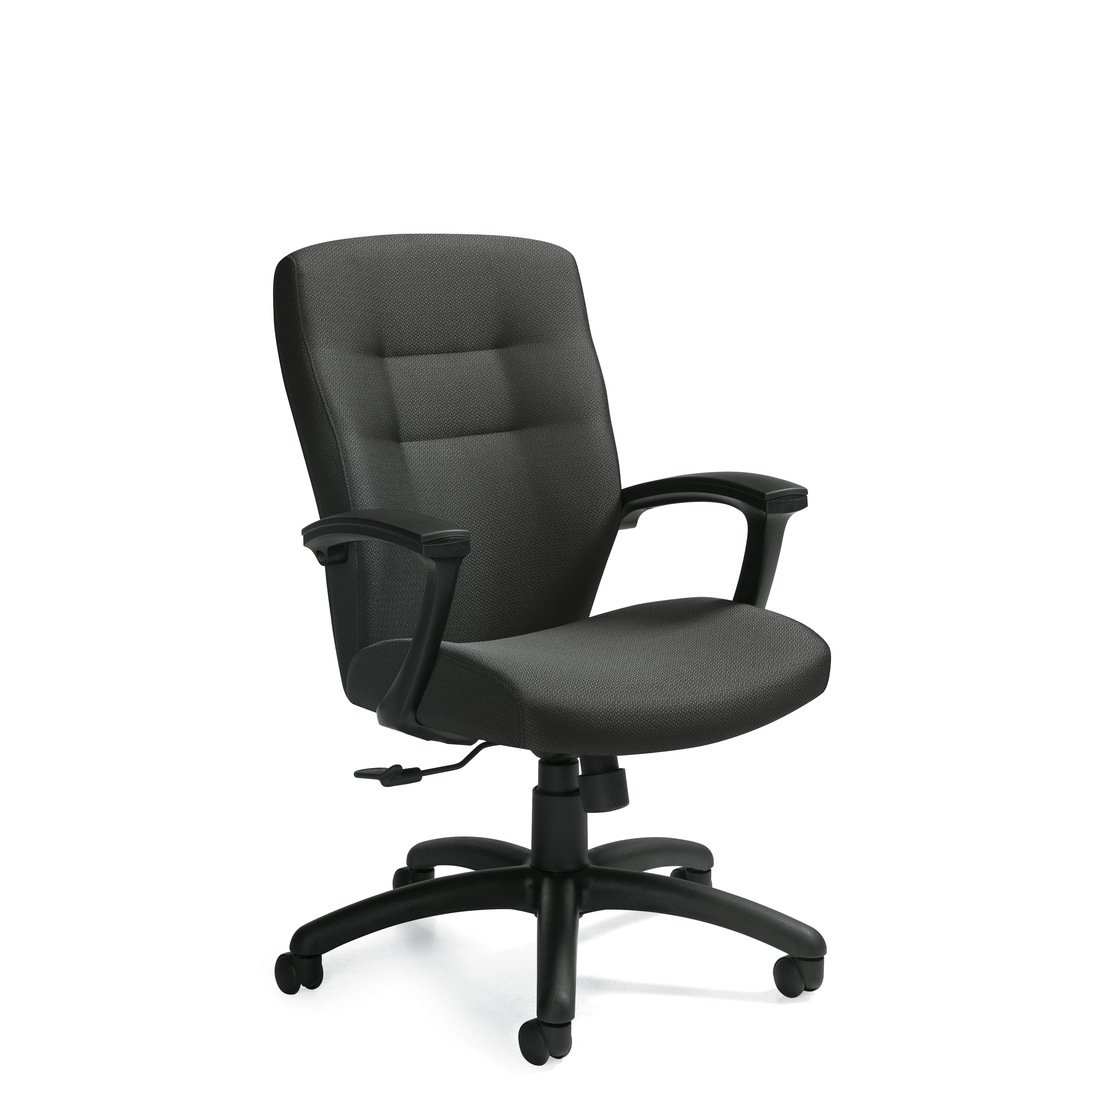 Synopsis medium back tilter chair, model 5091-4. This chair has been placed on a white background.